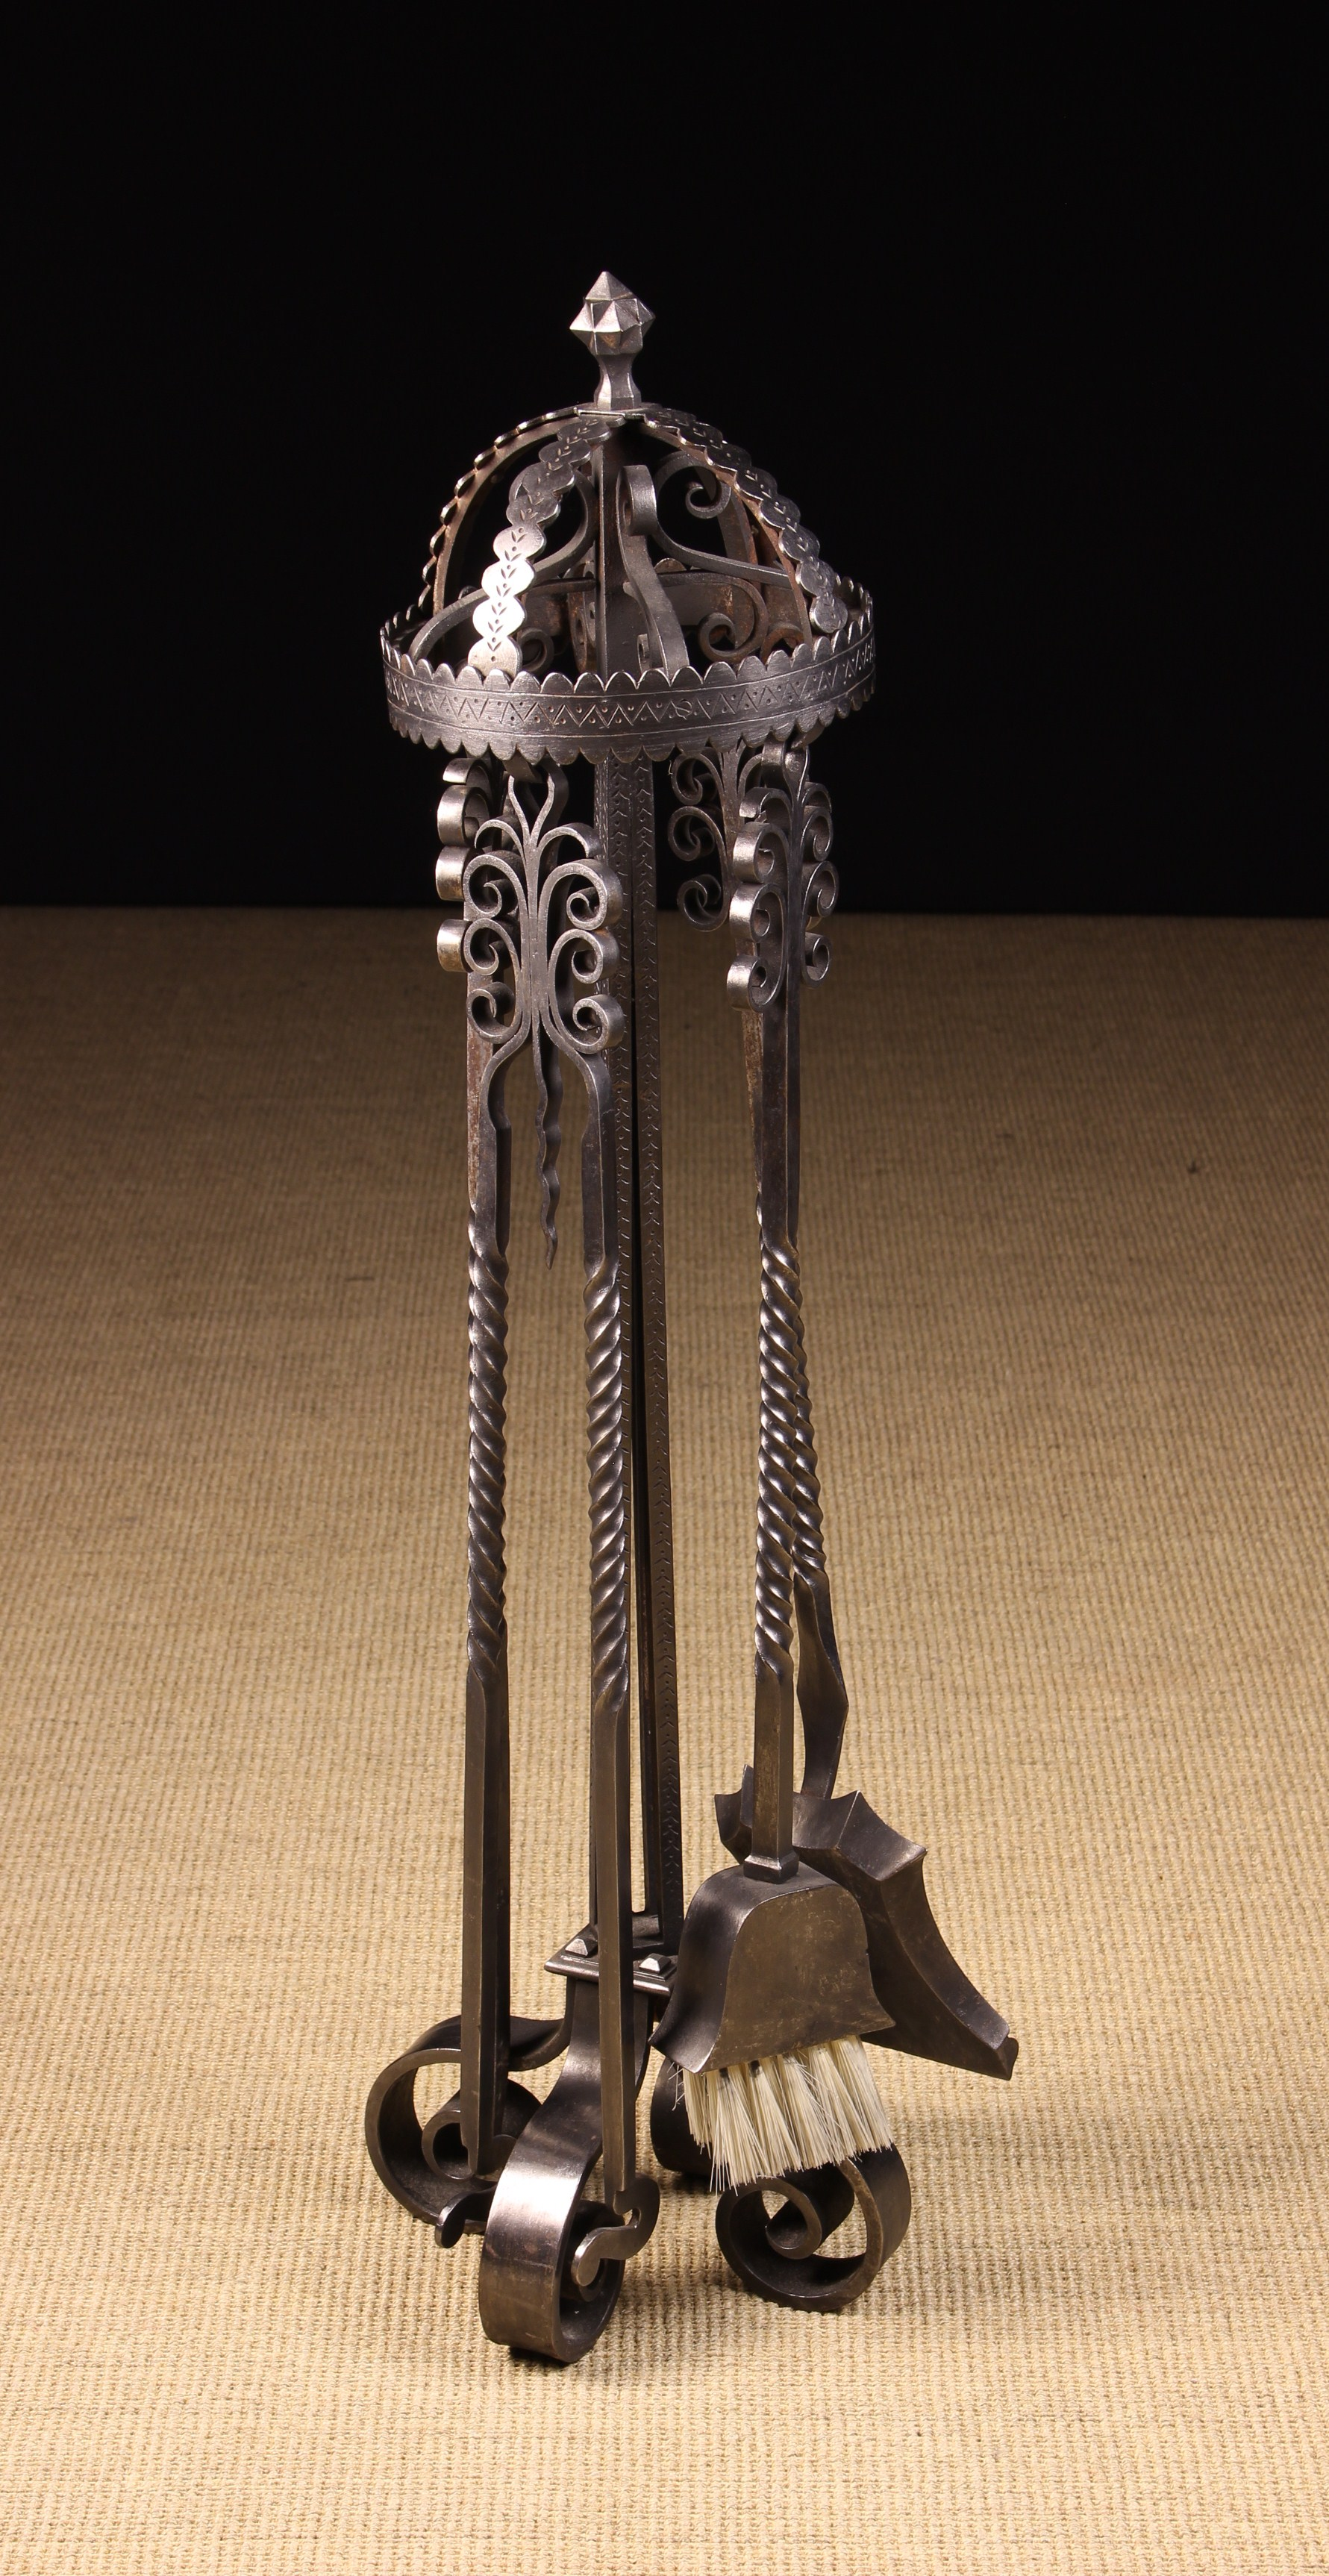 A Handsome Arts & Crafts Style Wrought Iron Fire Companion Set. - Image 2 of 2